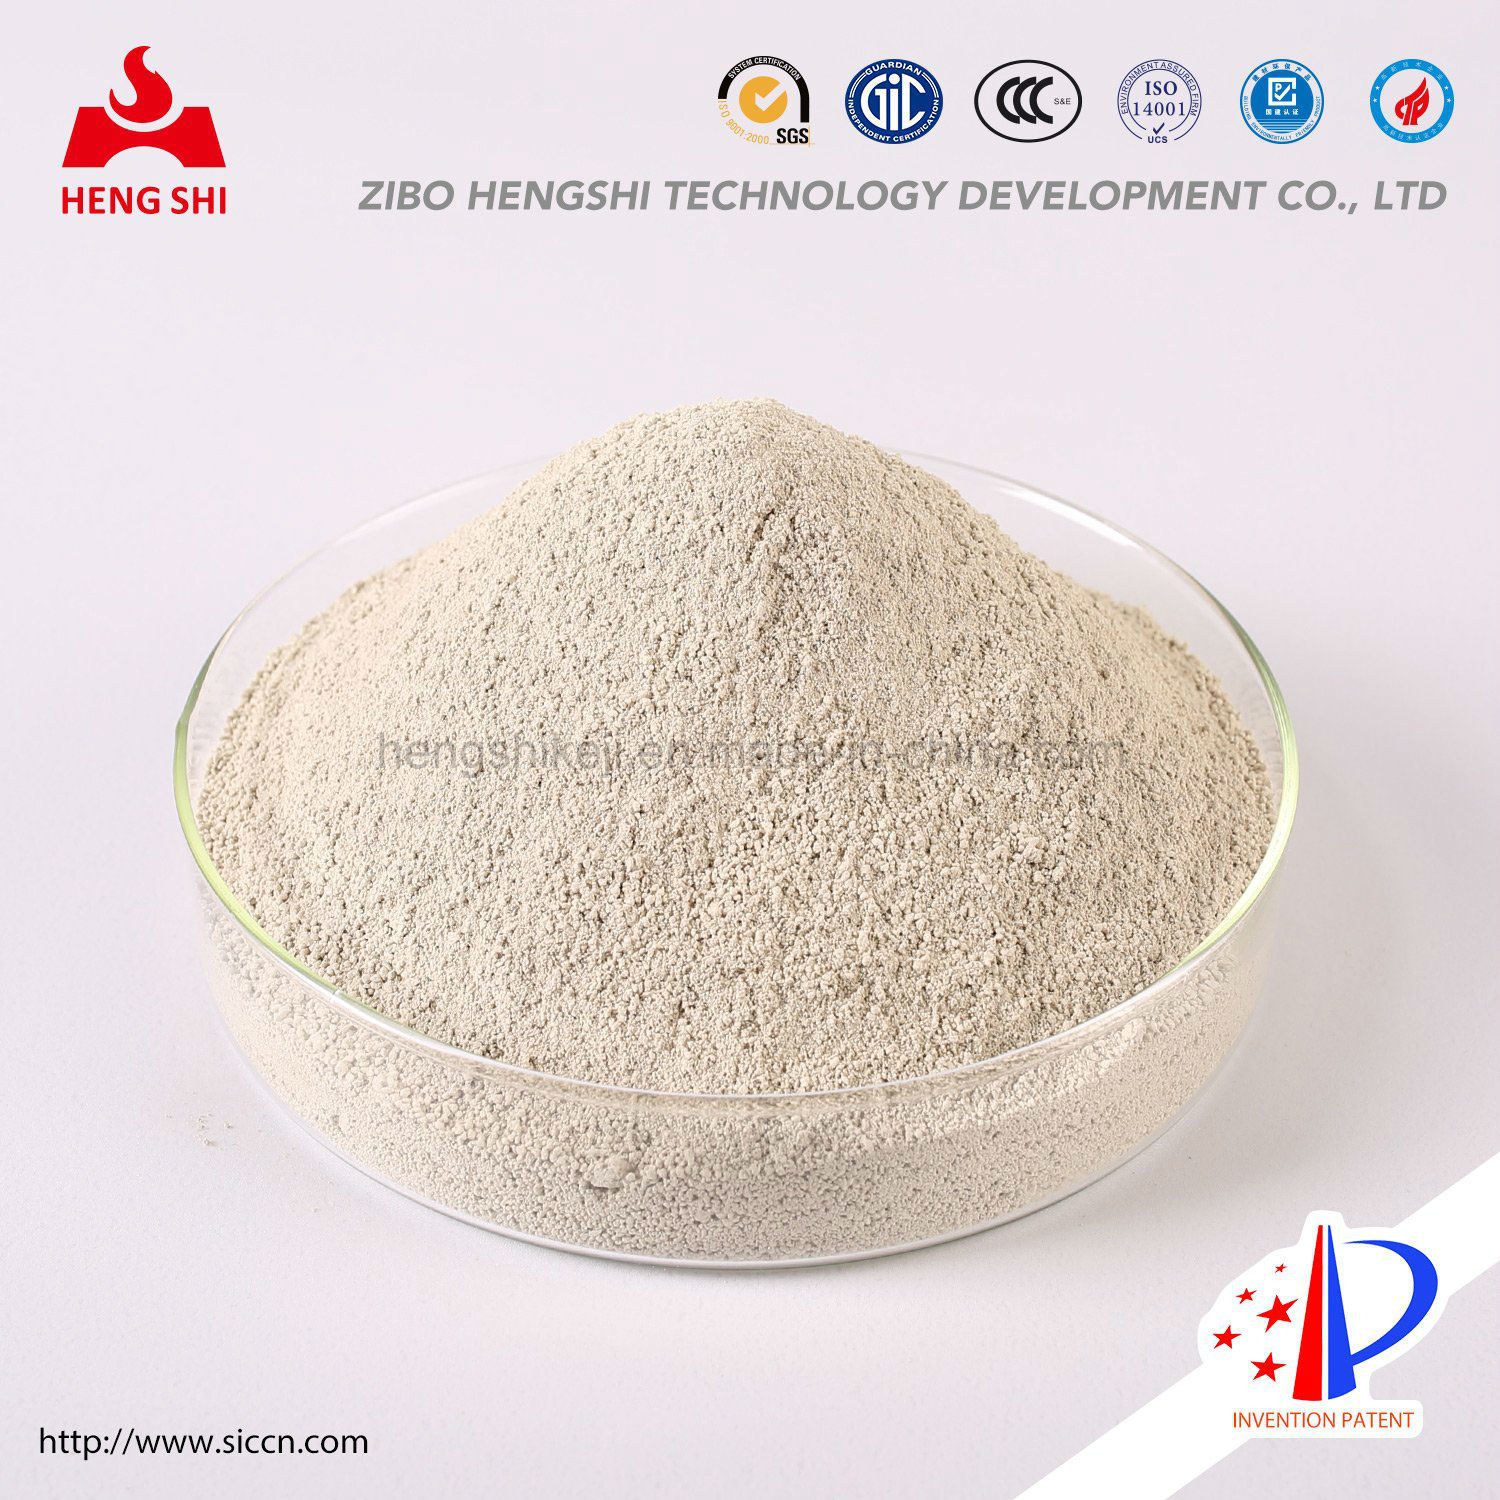 5850-6000 Meshes Silicon Nitride Powder